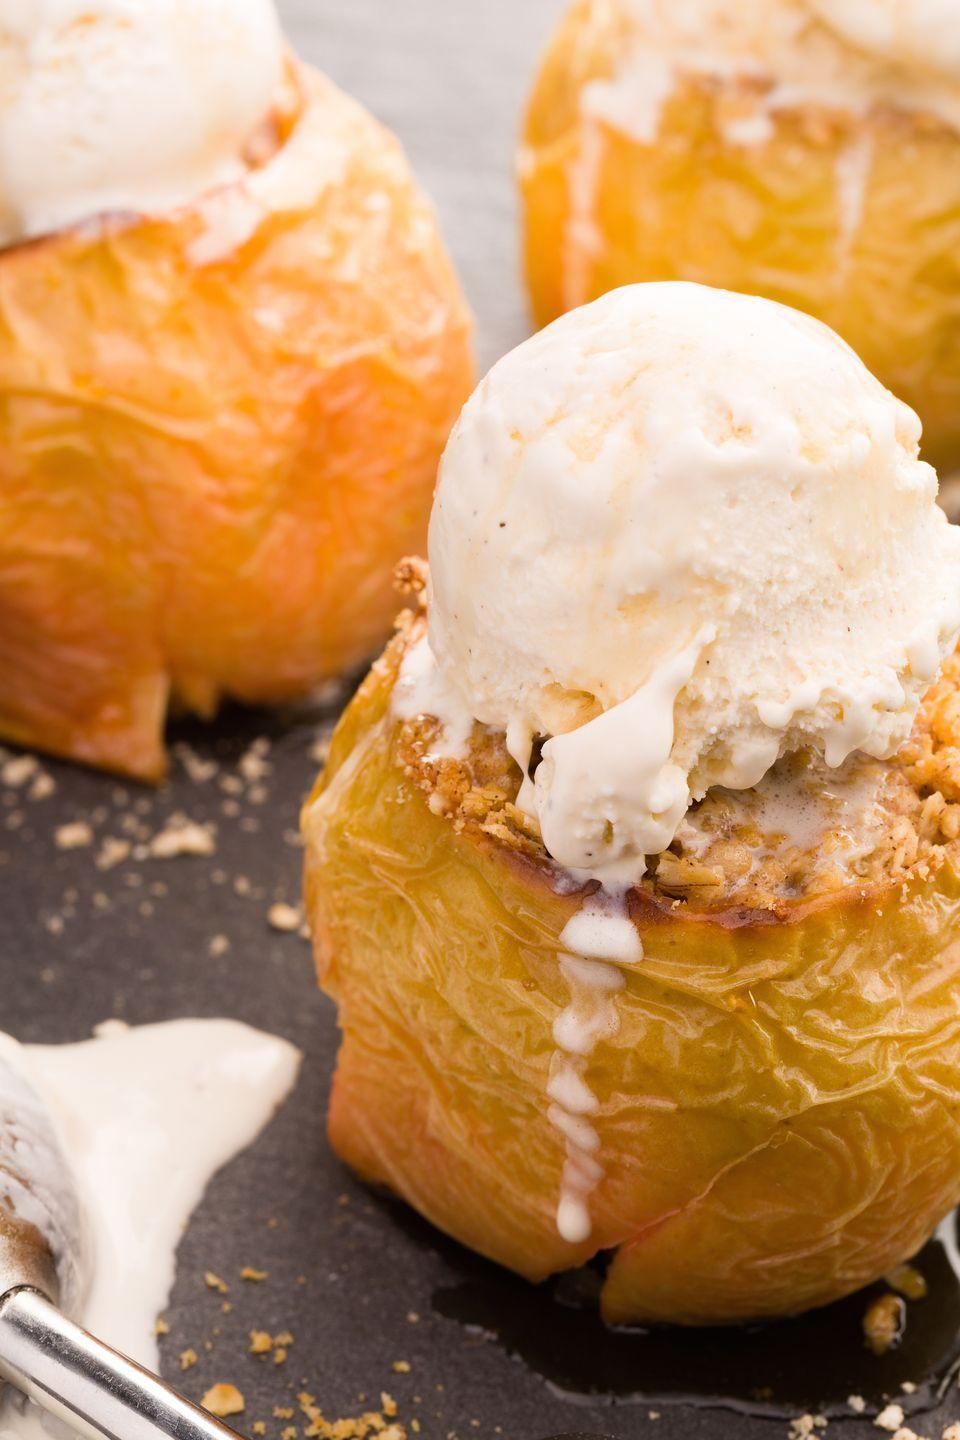 """<p>An easy fall dessert to whip up for a crowd.</p><p>Get the recipe from <a href=""""https://www.delish.com/cooking/recipe-ideas/recipes/a43869/baked-apple-crisps-recipe/"""" rel=""""nofollow noopener"""" target=""""_blank"""" data-ylk=""""slk:Delish"""" class=""""link rapid-noclick-resp"""">Delish</a>.</p>"""